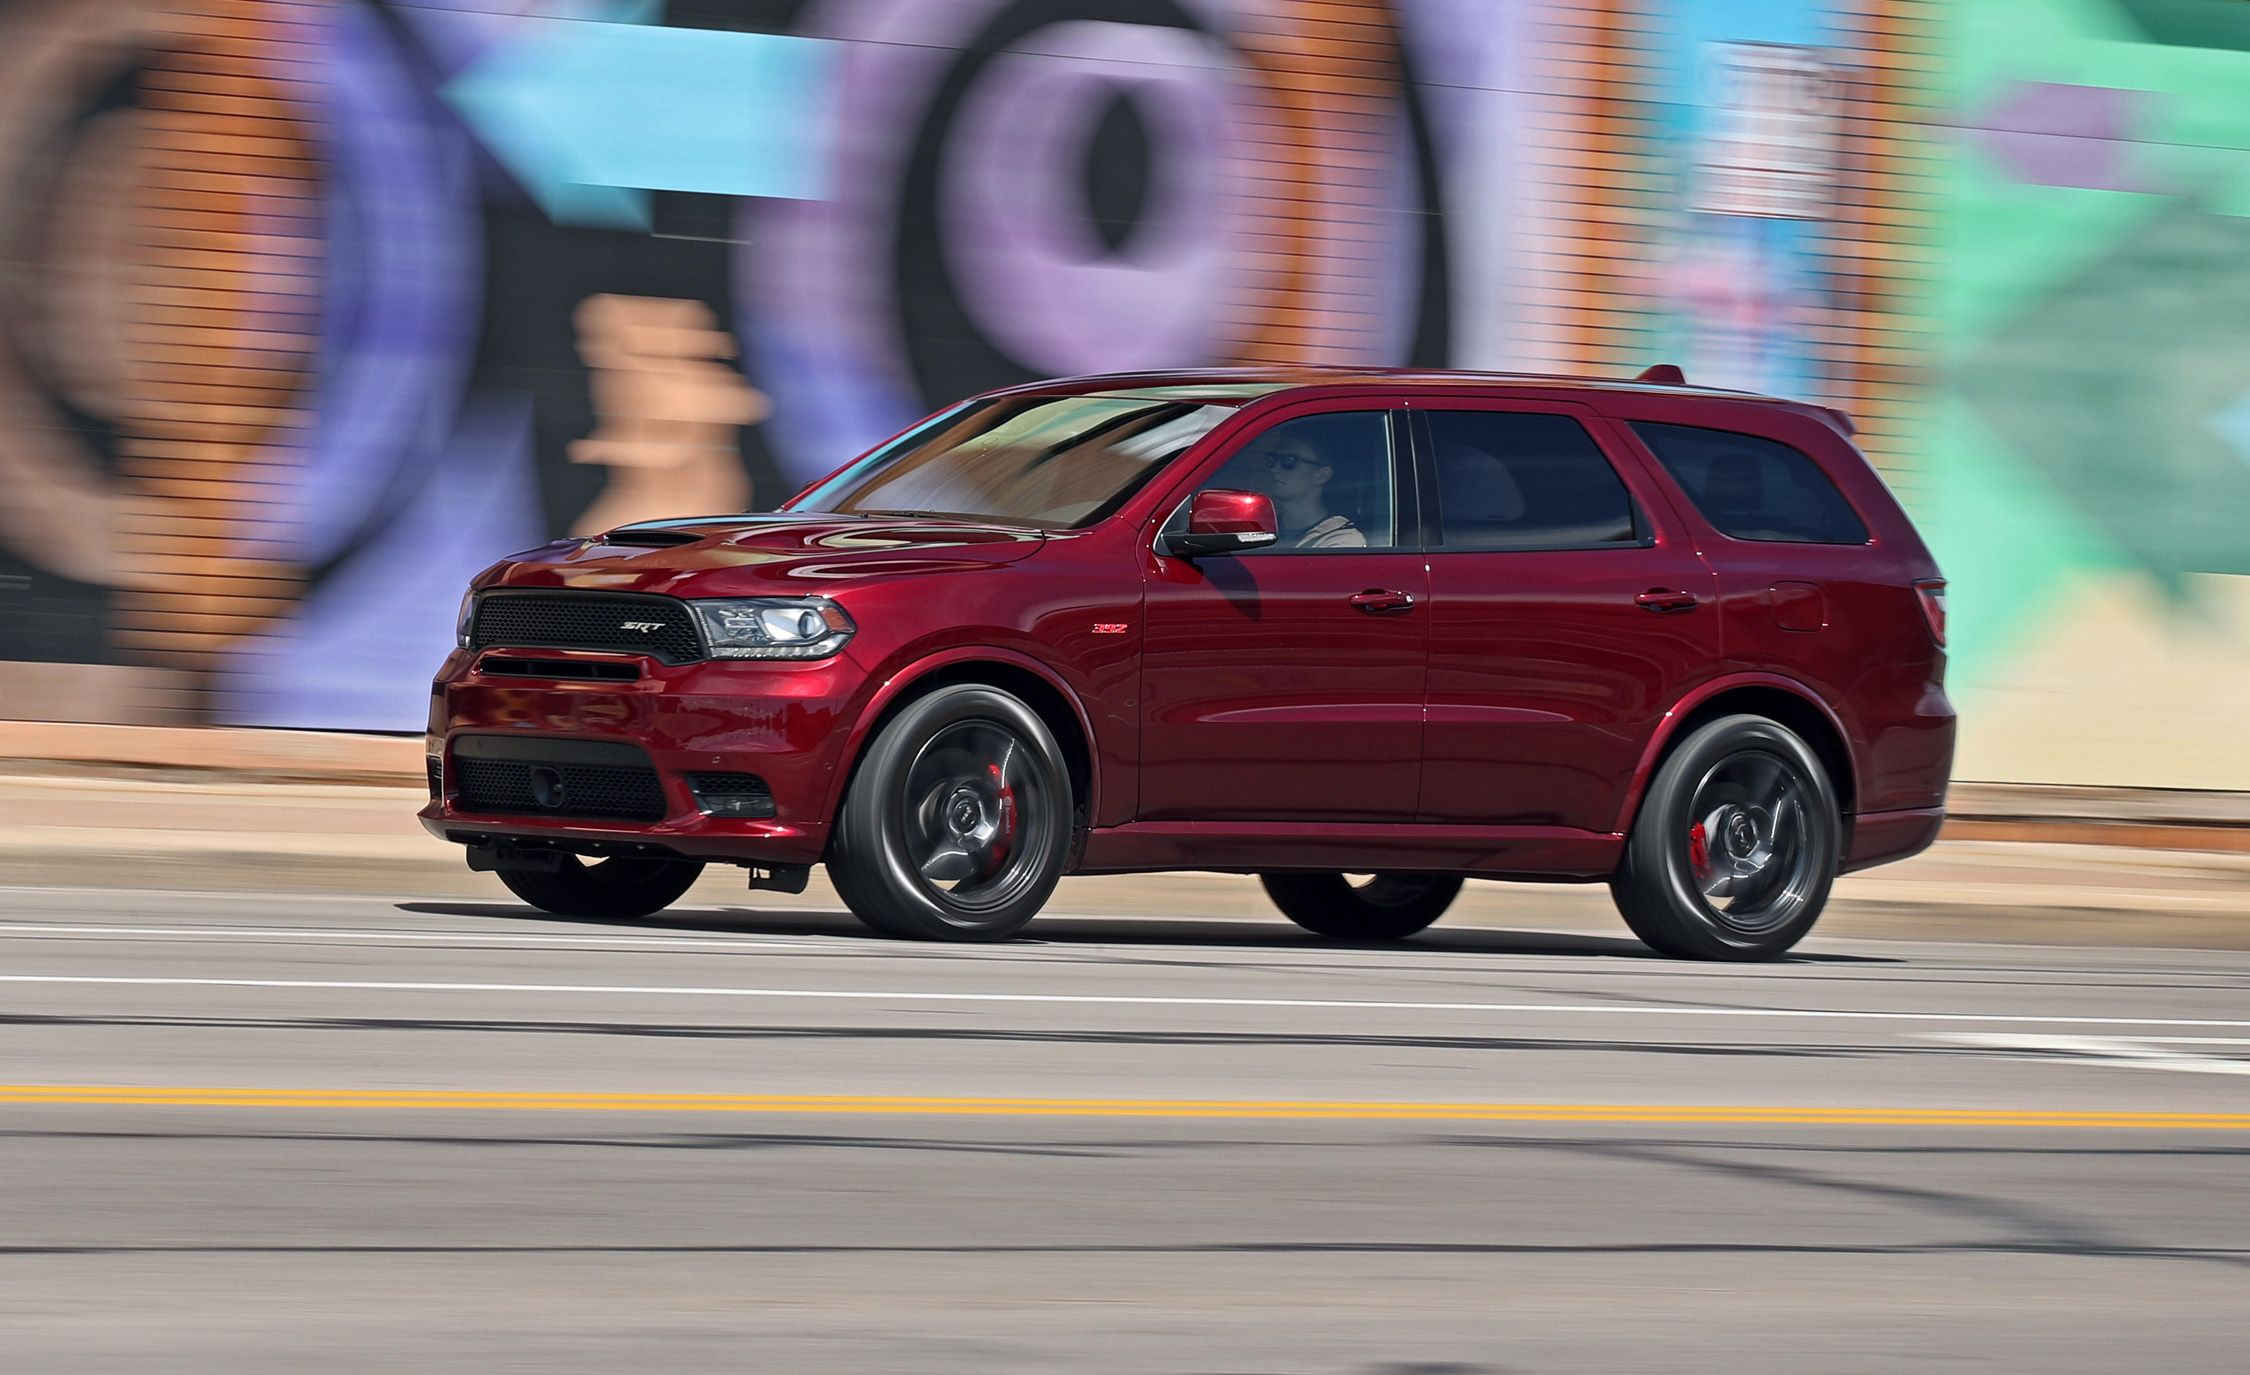 dodge durango srt reviews dodge durango srt price photos and specs car and driver. Black Bedroom Furniture Sets. Home Design Ideas